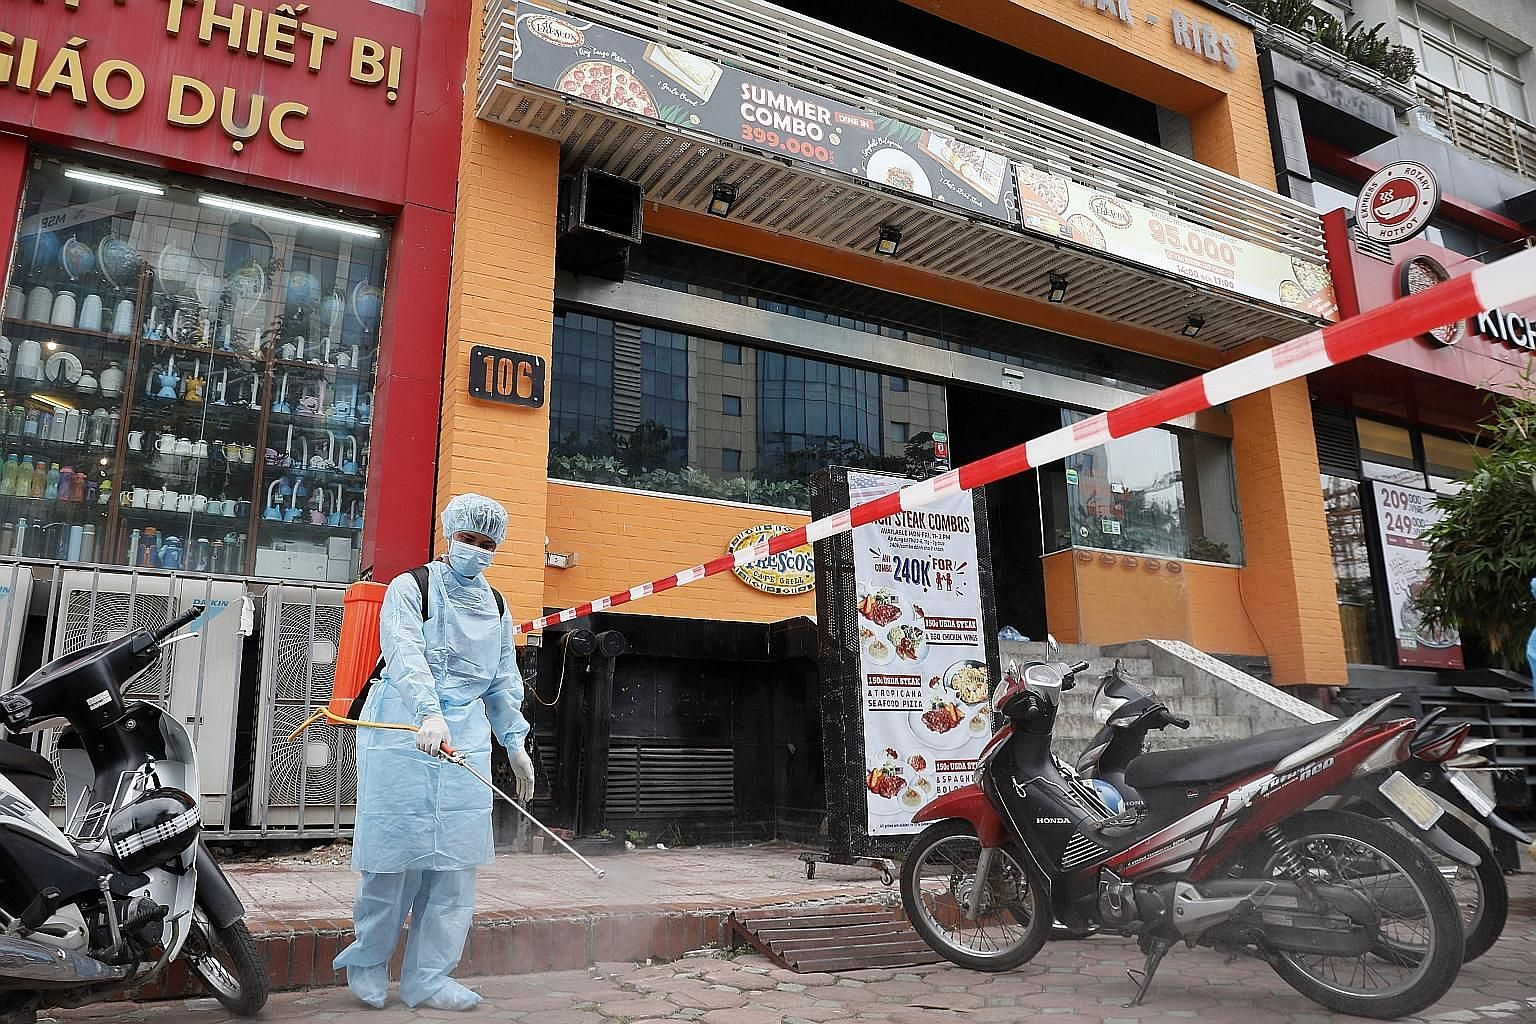 A worker spraying disinfectant outside a pizza parlour in Hanoi where a worker tested positive for Covid-19 after returning from Danang. Apart from the capital, Vietnam's new infections are in Danang, Ho Chi Minh City and Dak Lak province in the cent